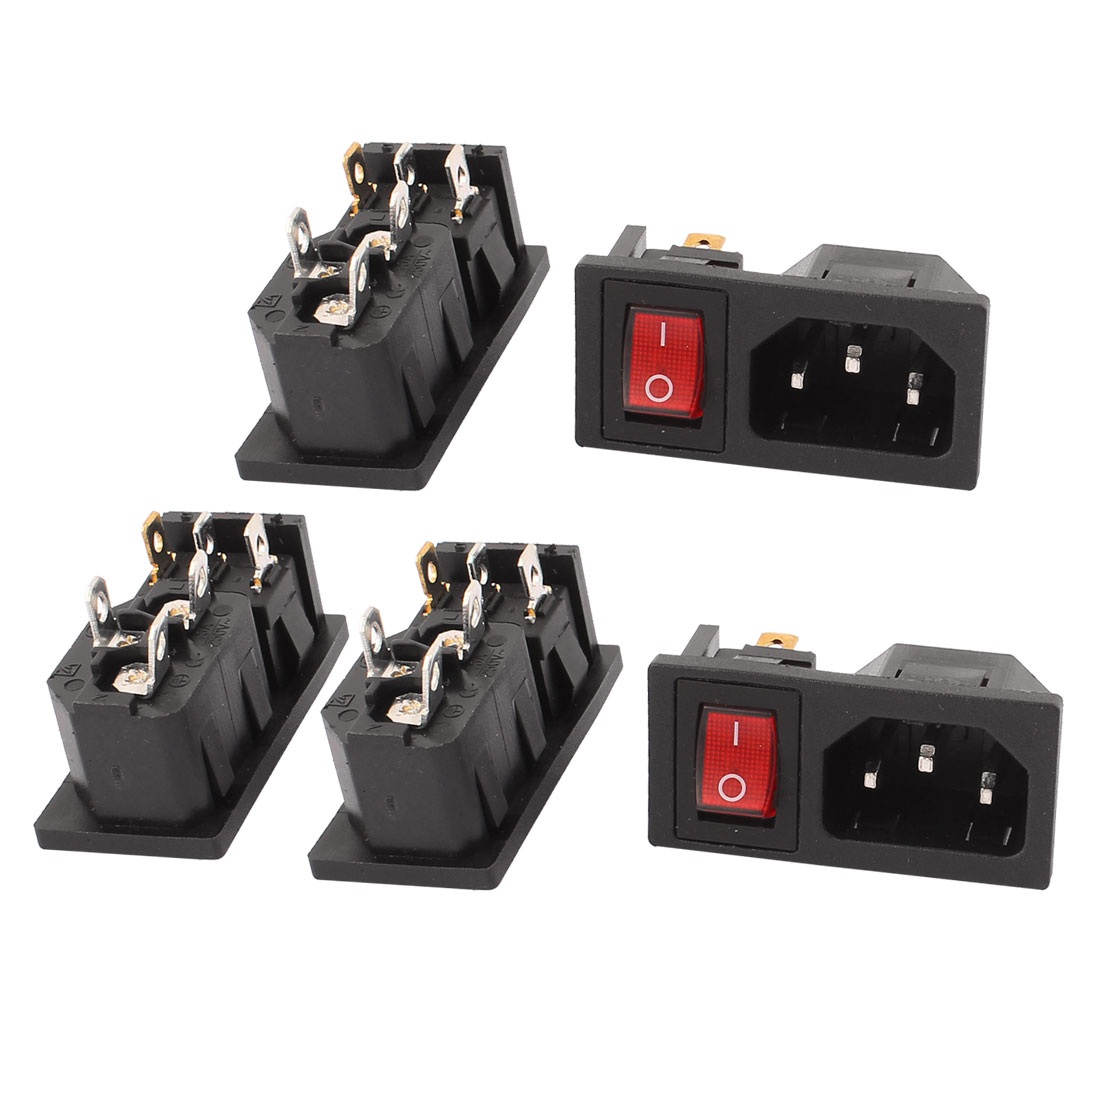 5 Pcs IEC320 C14 AC 250V 10A Power Inlet Red Light SPST Rocker Switch